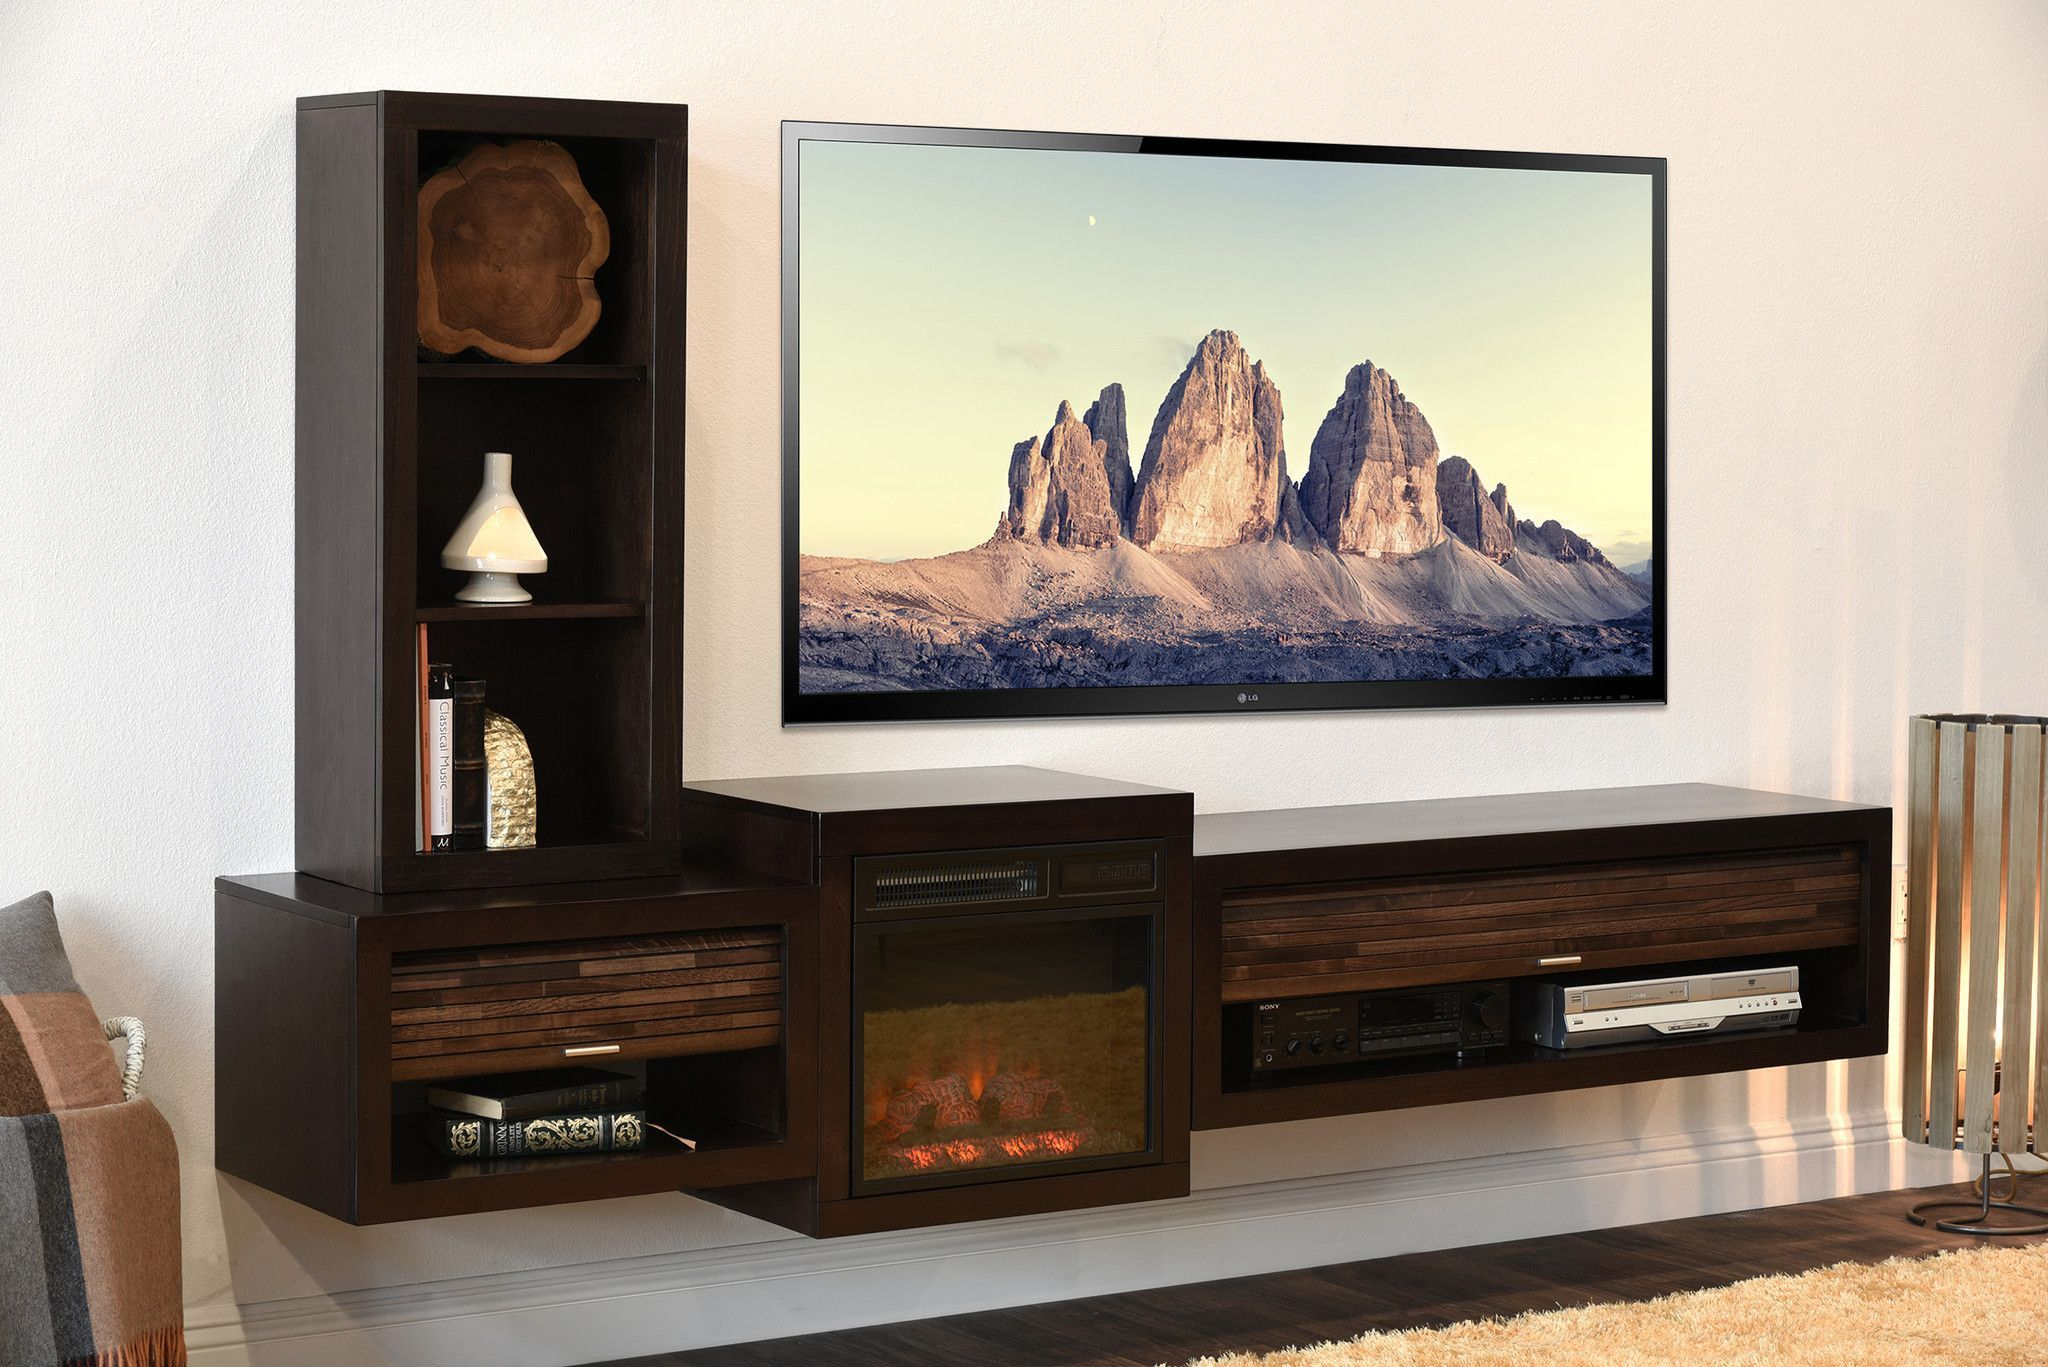 10 Diy Tv Stand Ideas You Can Try At Home Fireplace Tv Stand